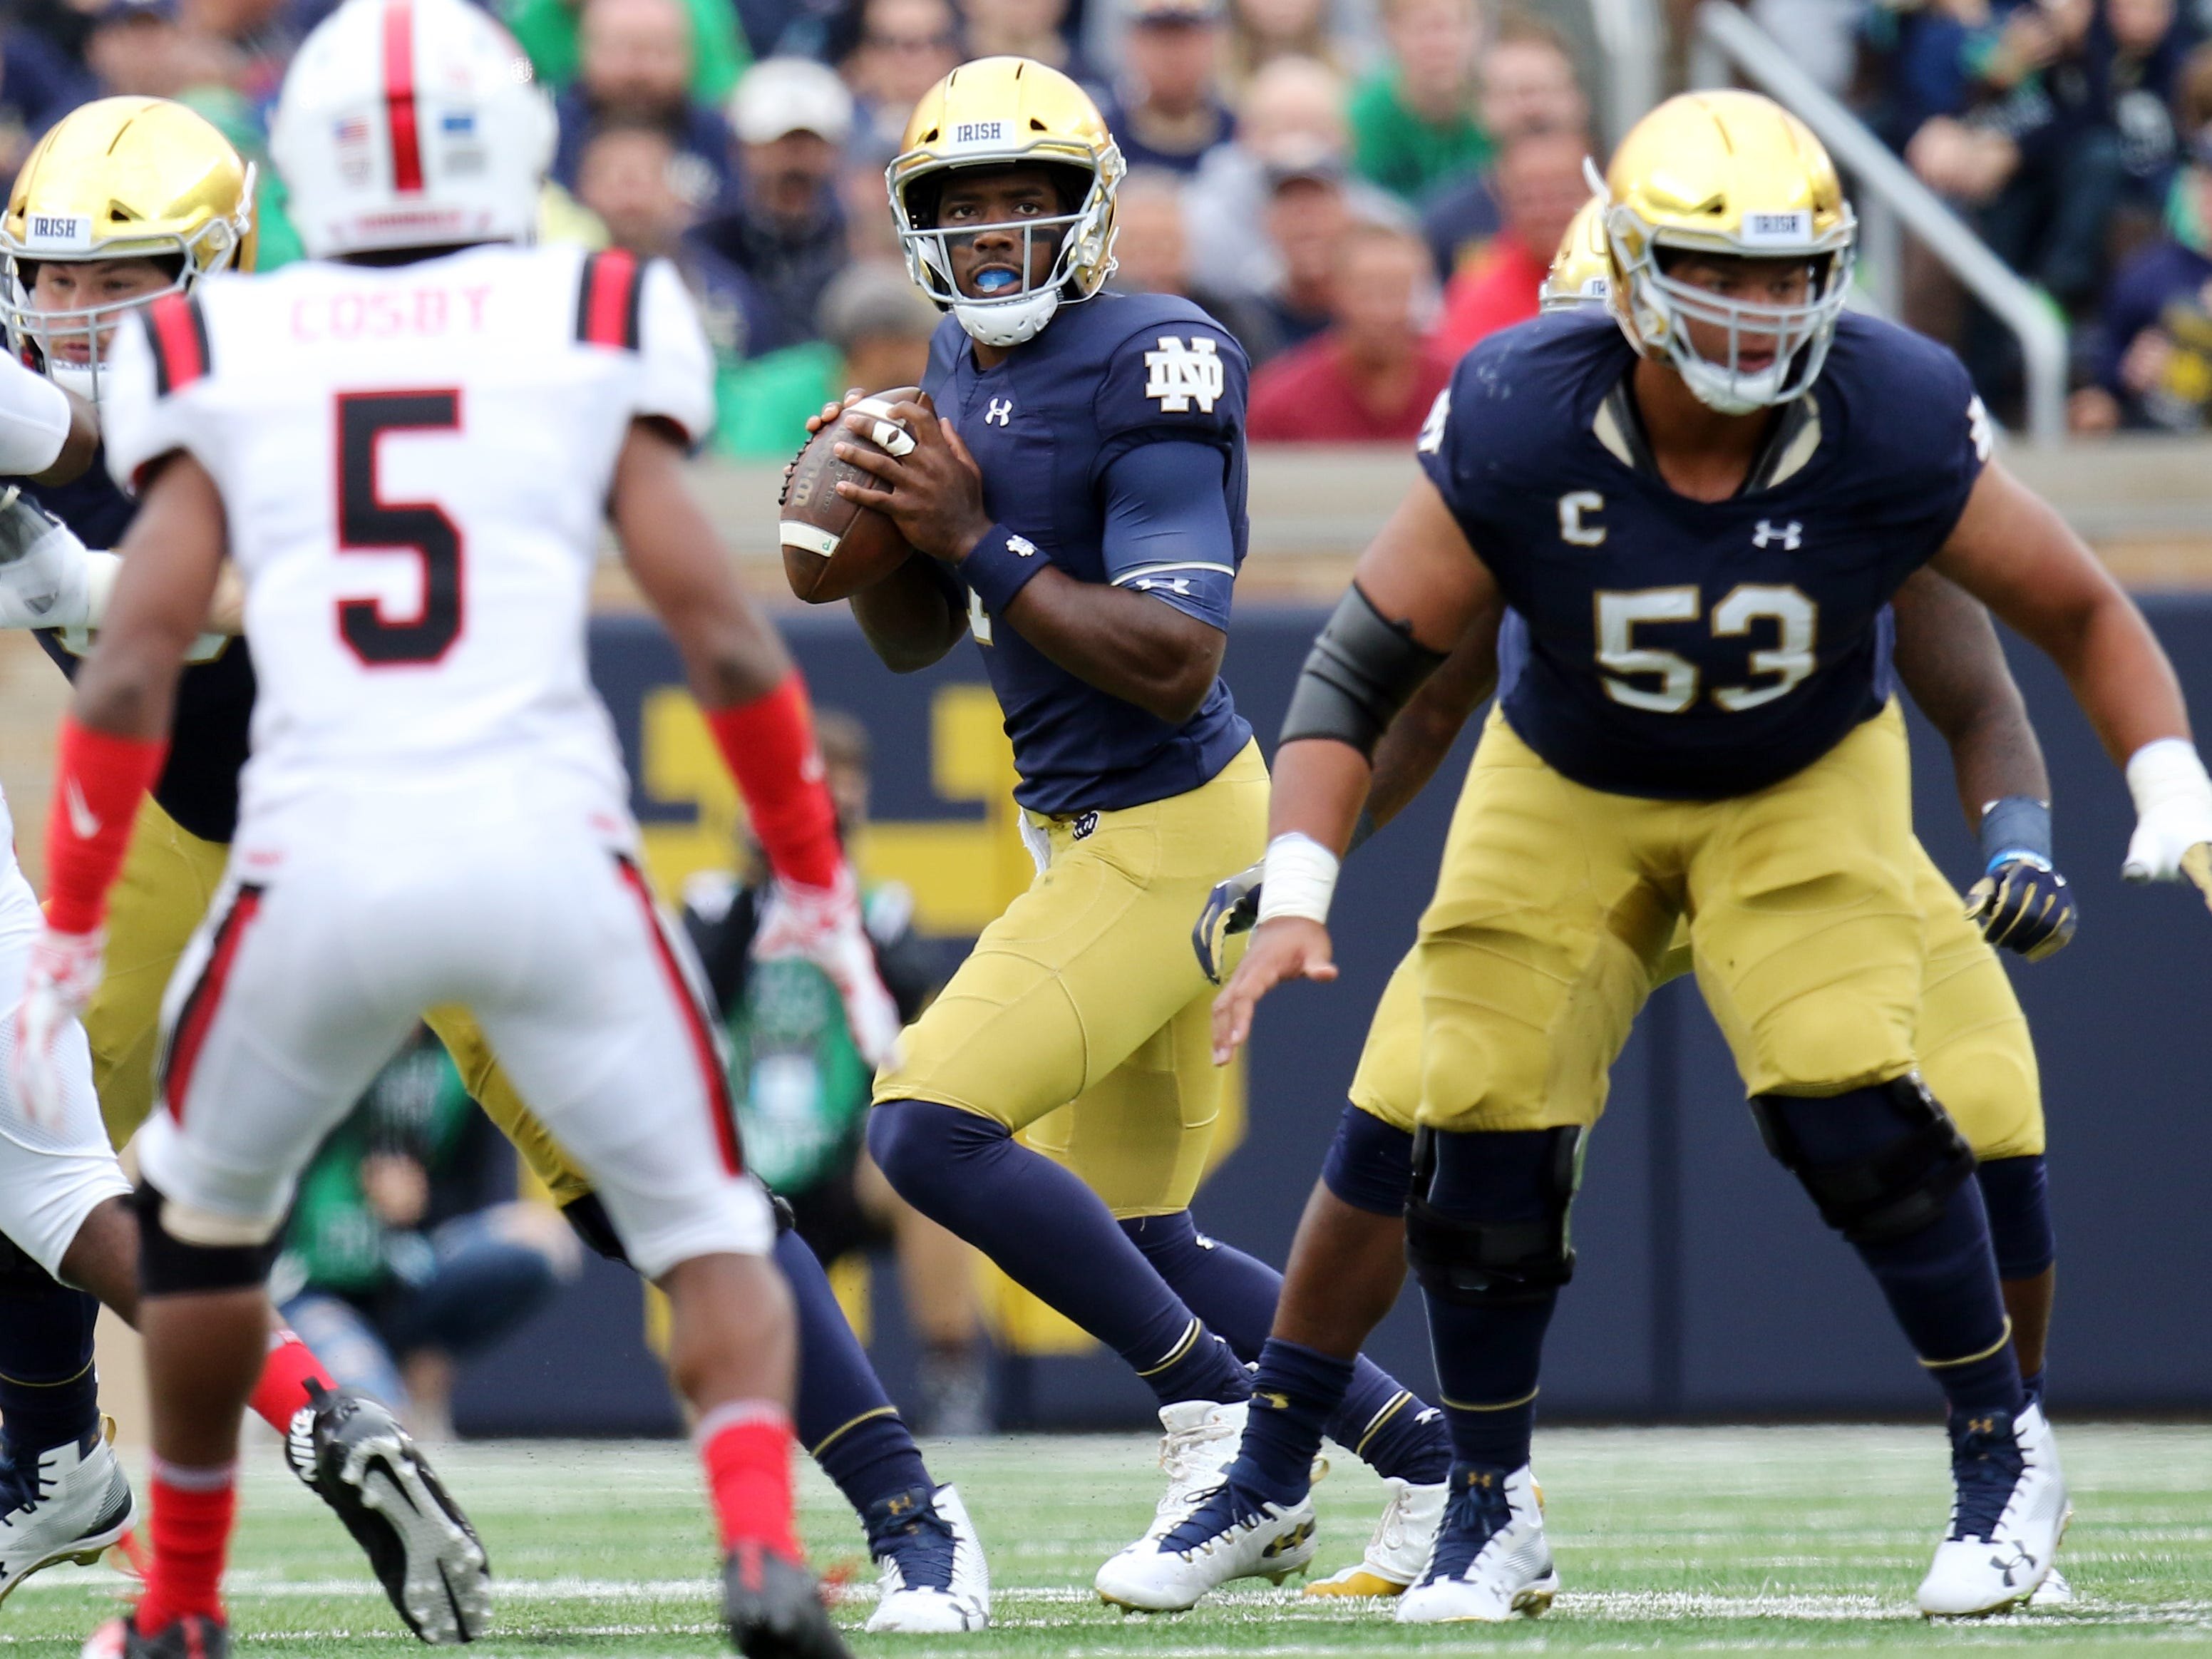 Here's the line on Notre Dame football: 'Hit some people in the nose'